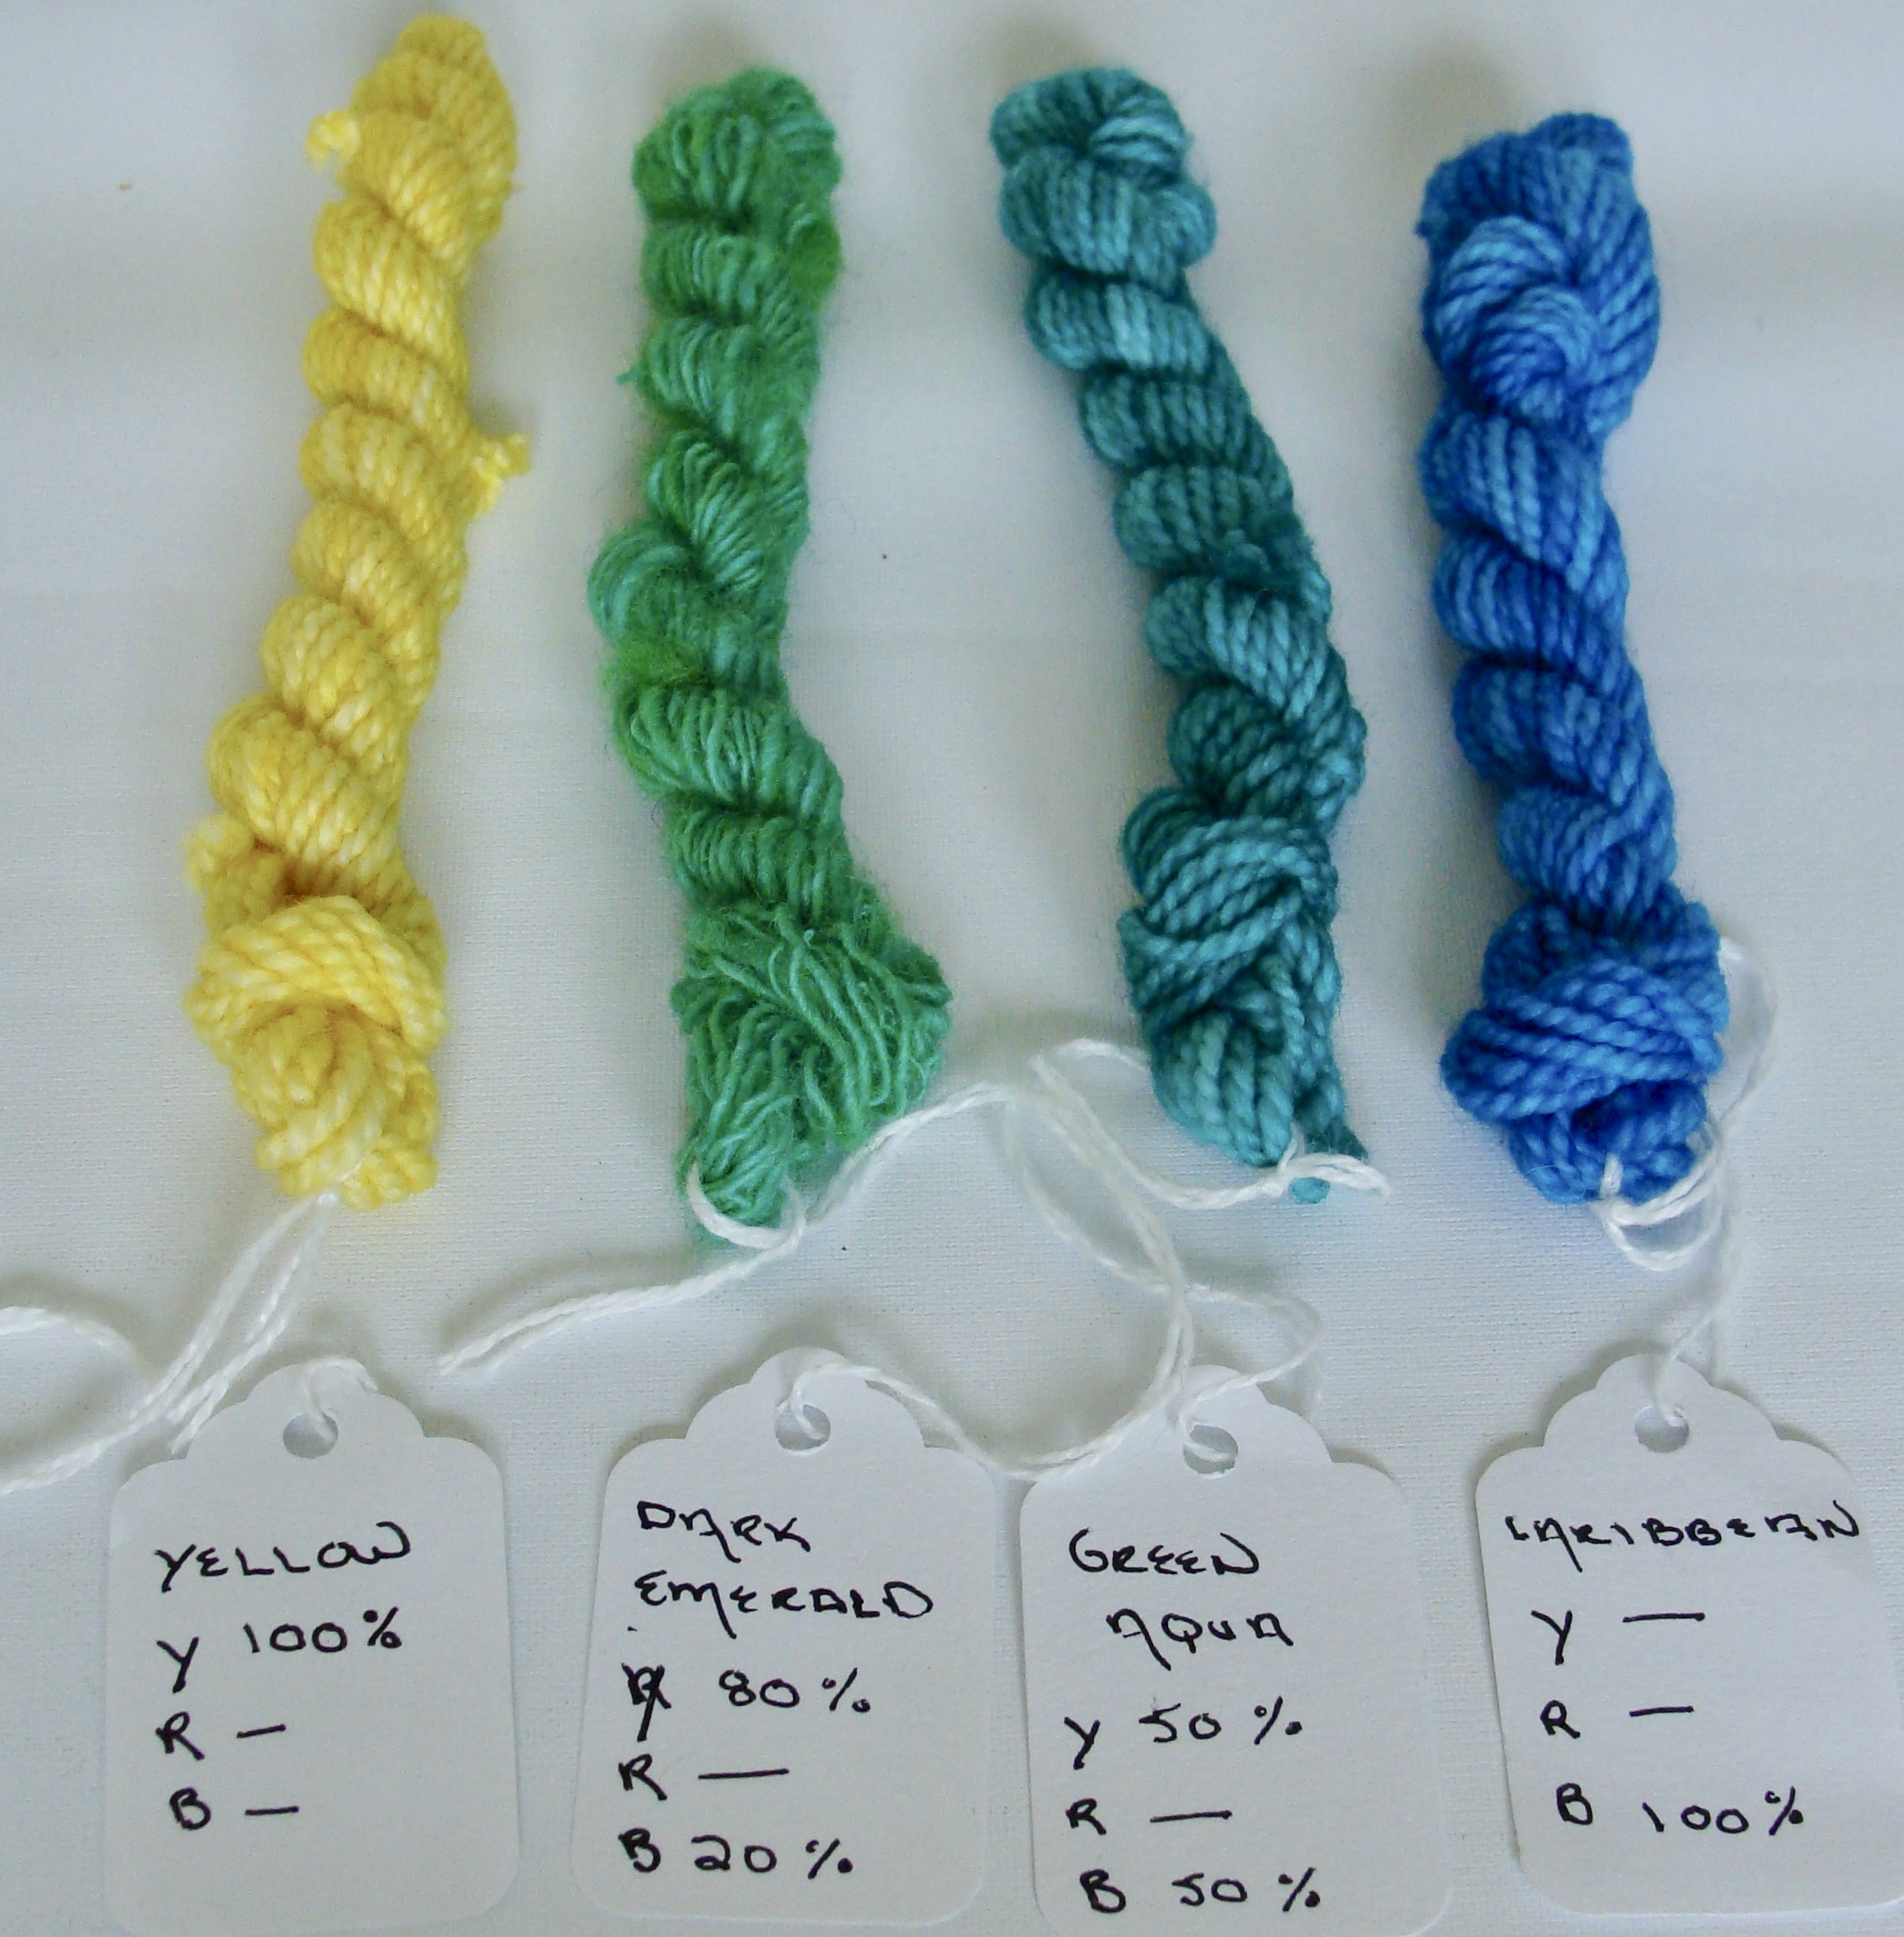 mixing yellow & blue dyes